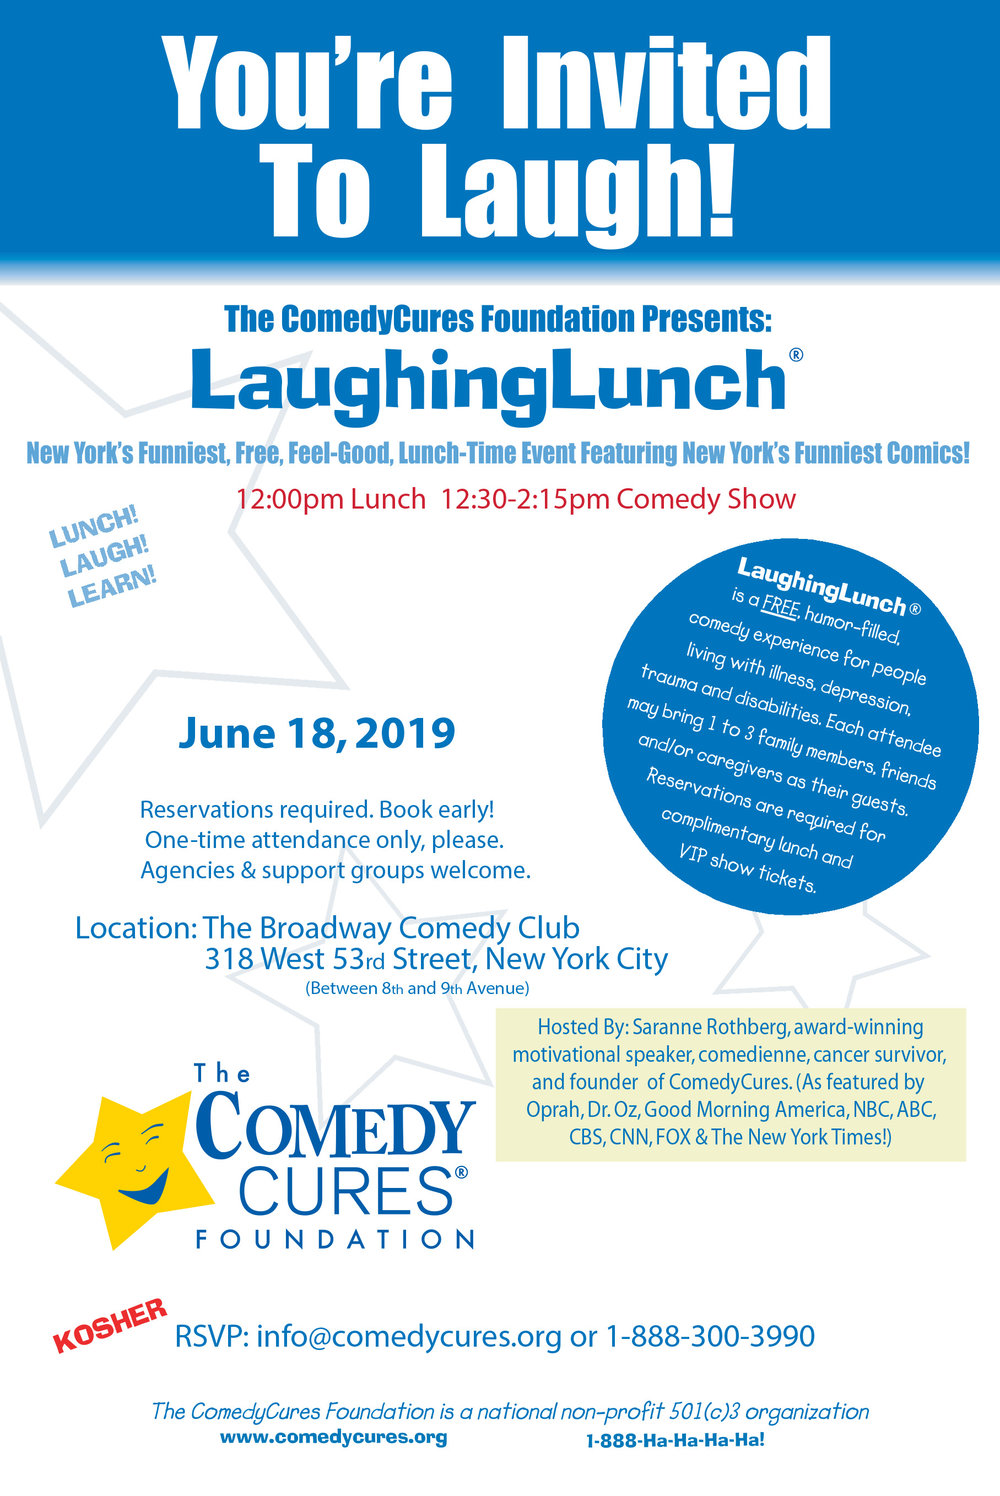 CC LaughingLunch June 18 2019.jpg